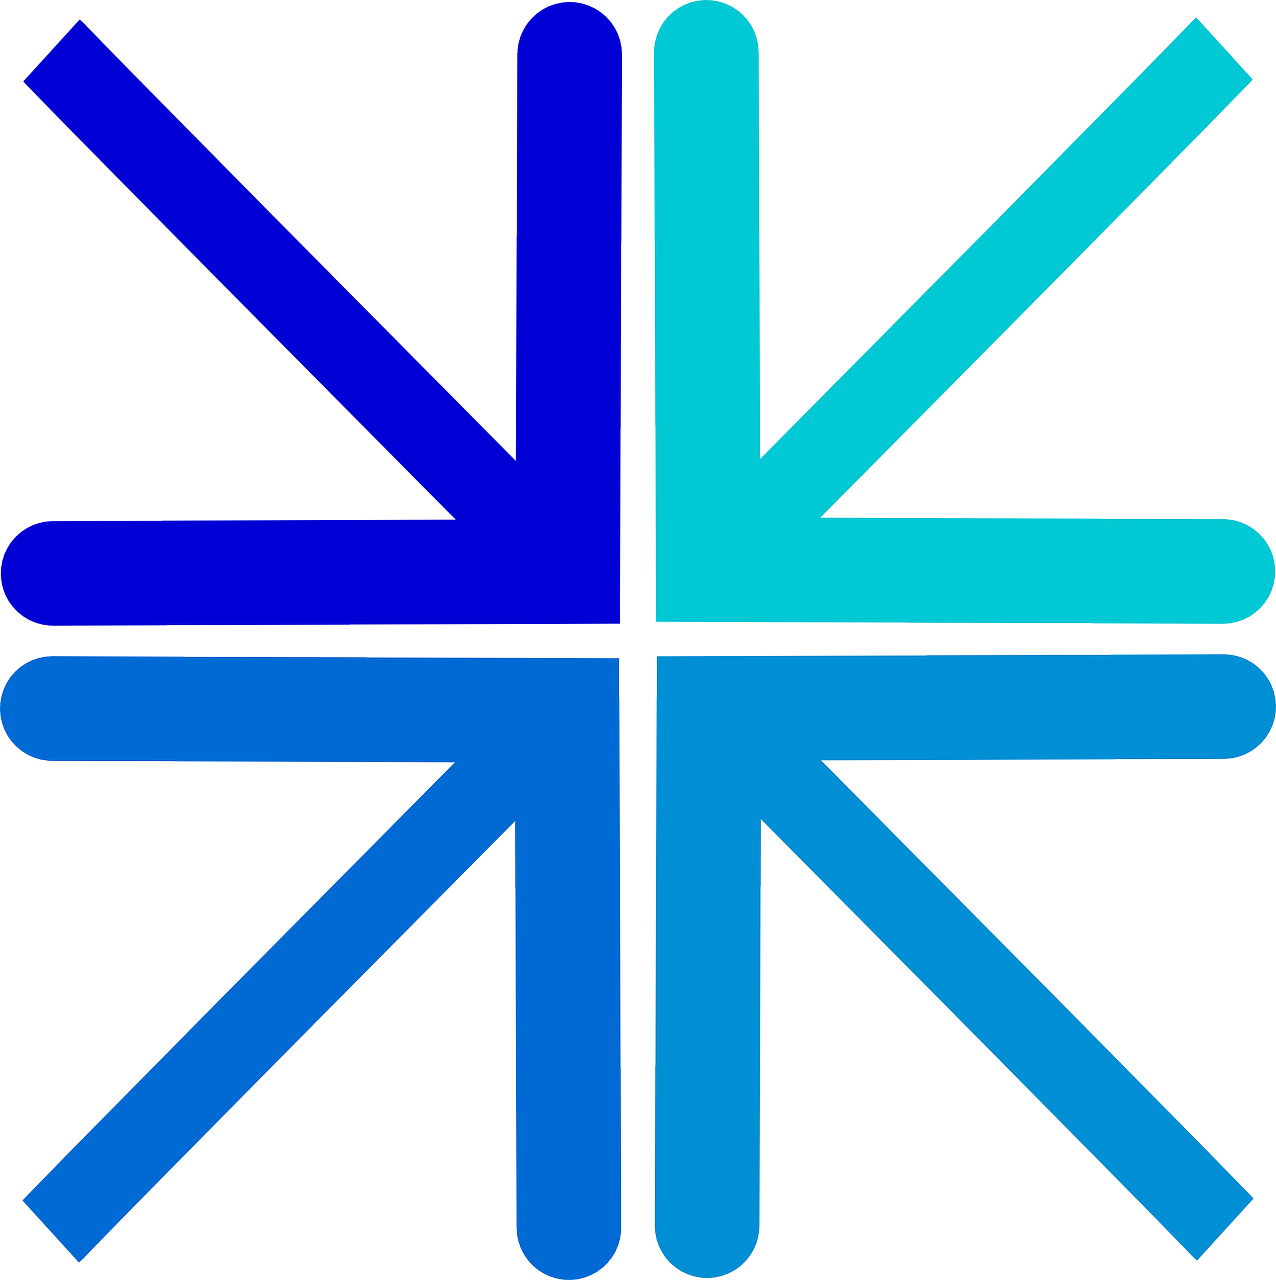 Free clipart cross shield picture free download Download Royalty-free Clip art - Blue Cross Blue Shield Association ... picture free download